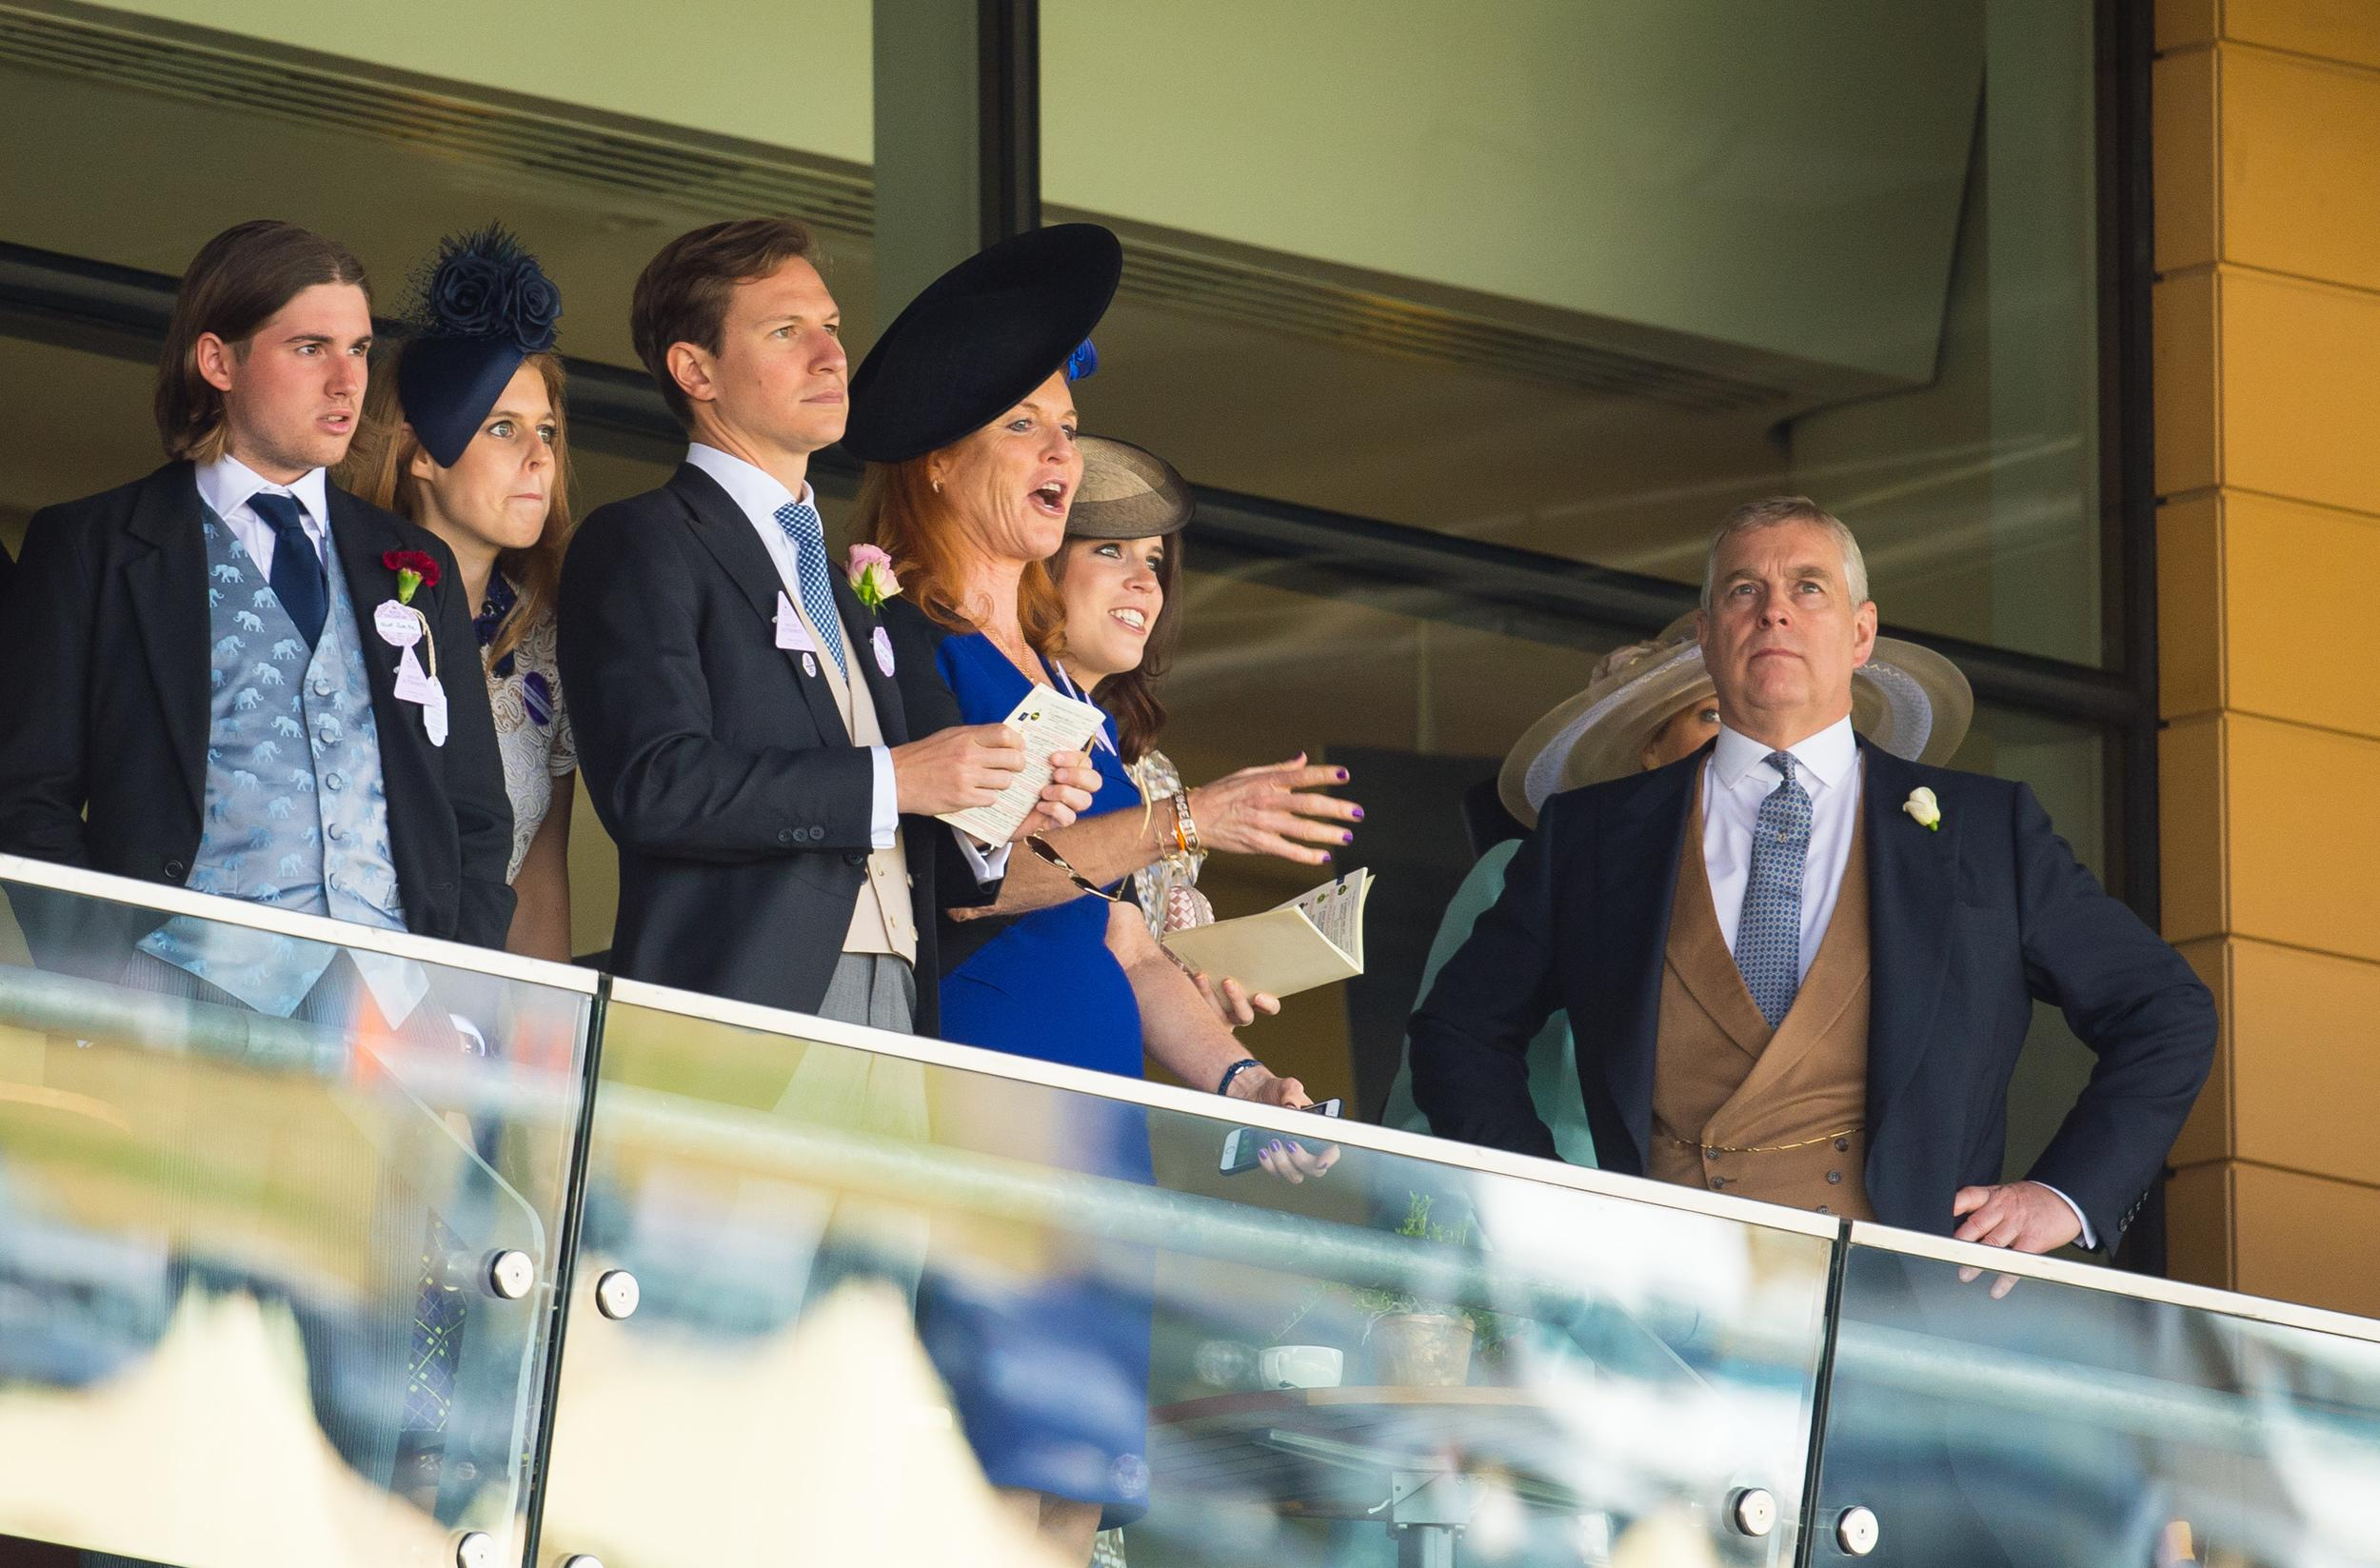 Princess Beatrice of York (second left) Sarah Ferguson (centre), Princess Eugenie of York (second from right) and Prince Andrew, Duke of York (right) during day four of the 2015 Royal Ascot Meeting at Ascot Racecourse, Berkshire.